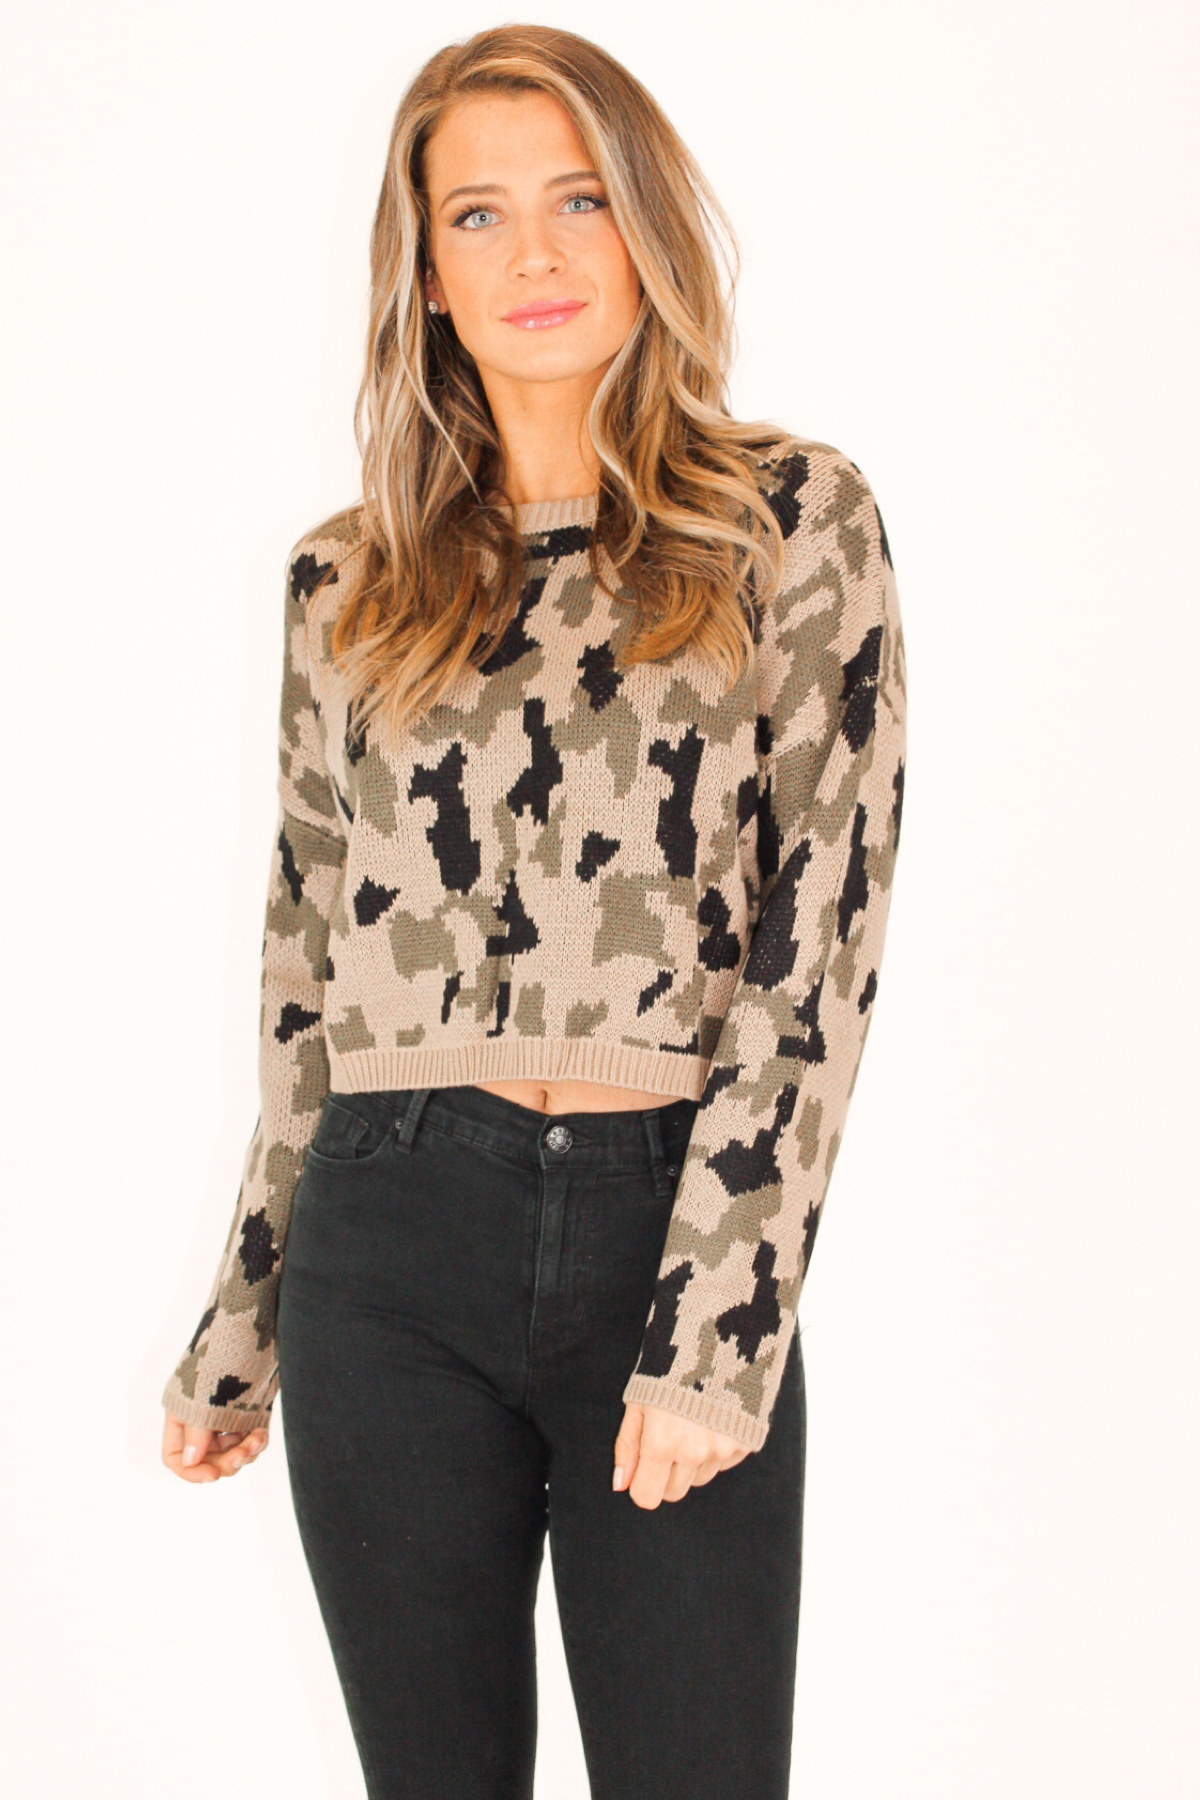 CAMO PRINT KNIT CROPPED SWEATER IN TAUPE COMBO